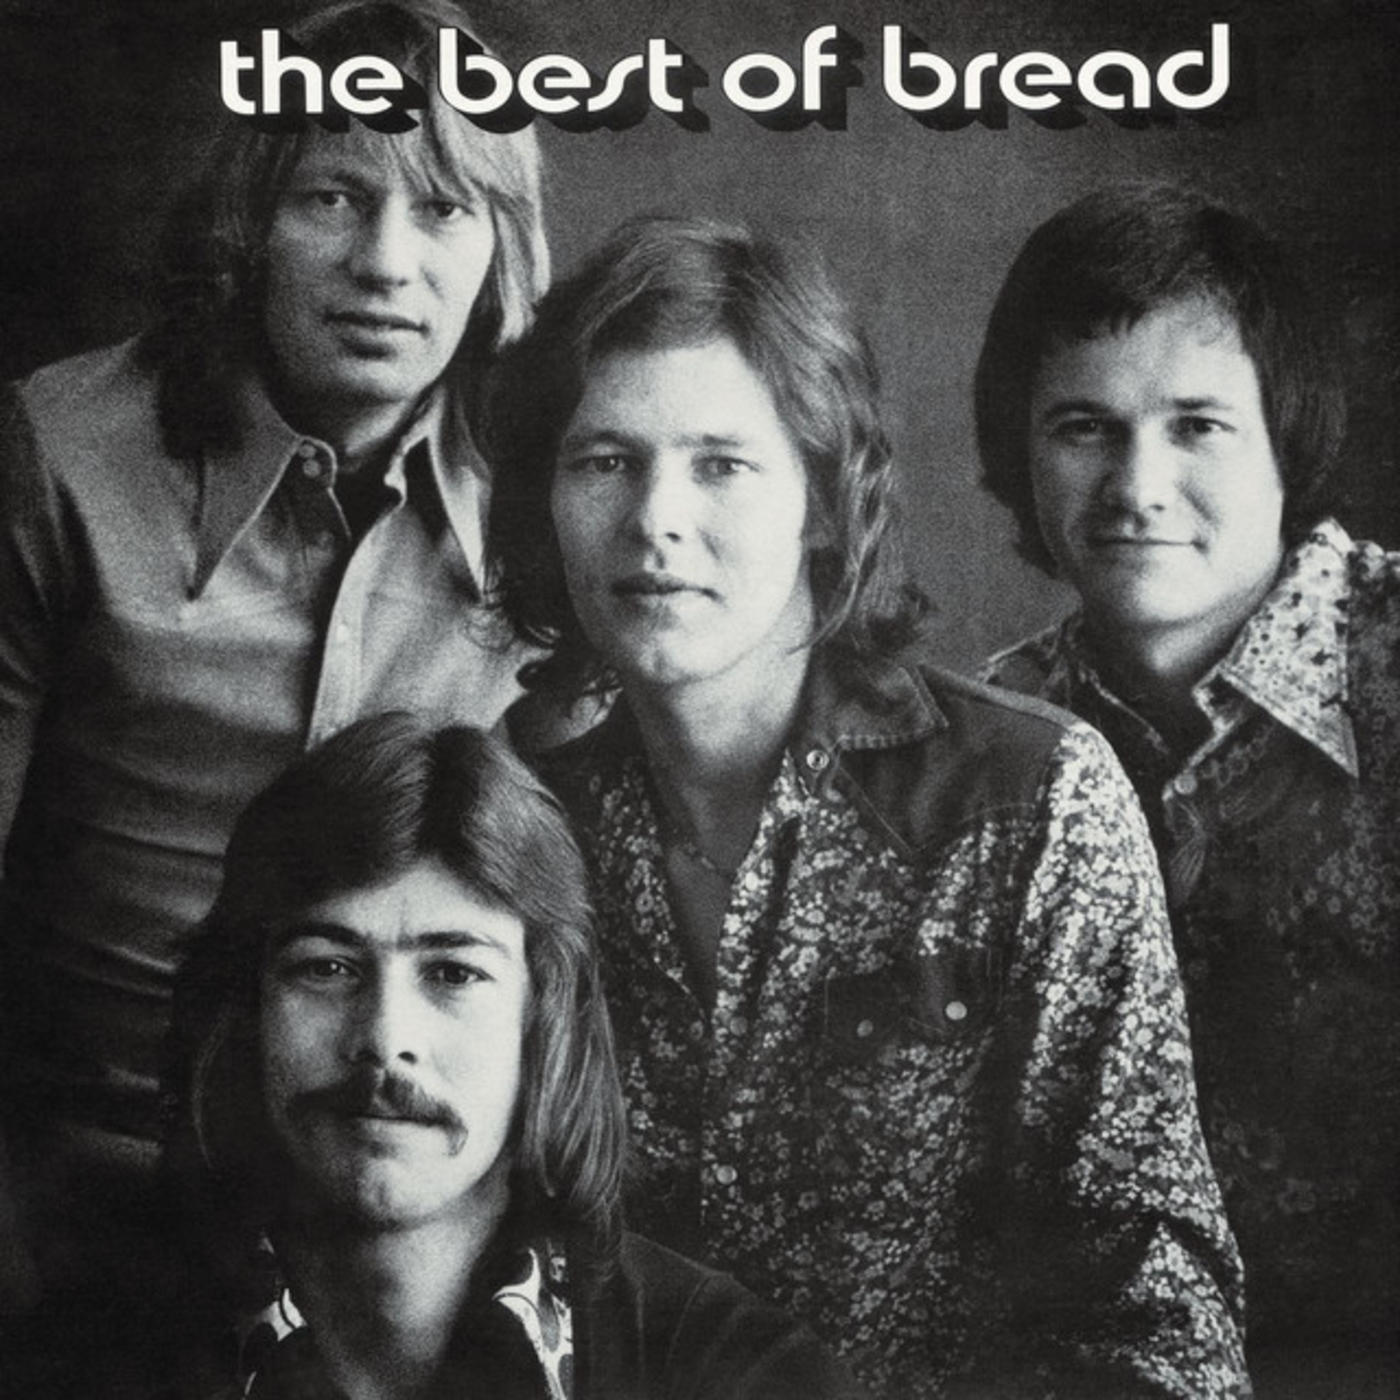 Bread - Official Playlist - Make It With You, Everything I Own, If, Guitar Man